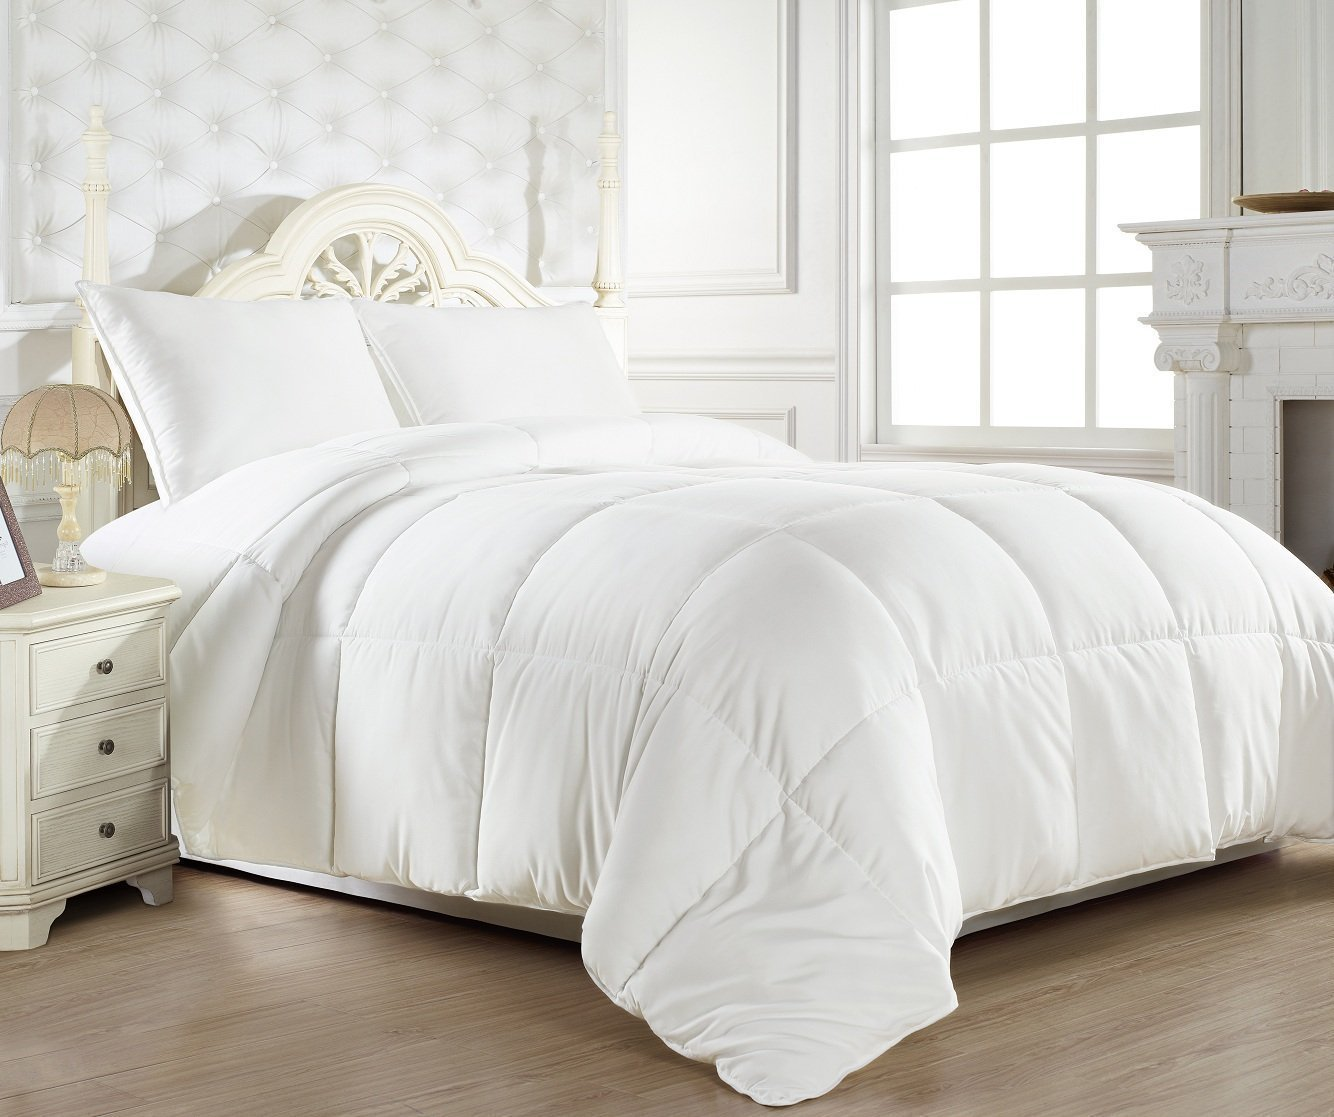 ideas set comforter pictures beddingwhite setbig bedding exceptional white big fluffy